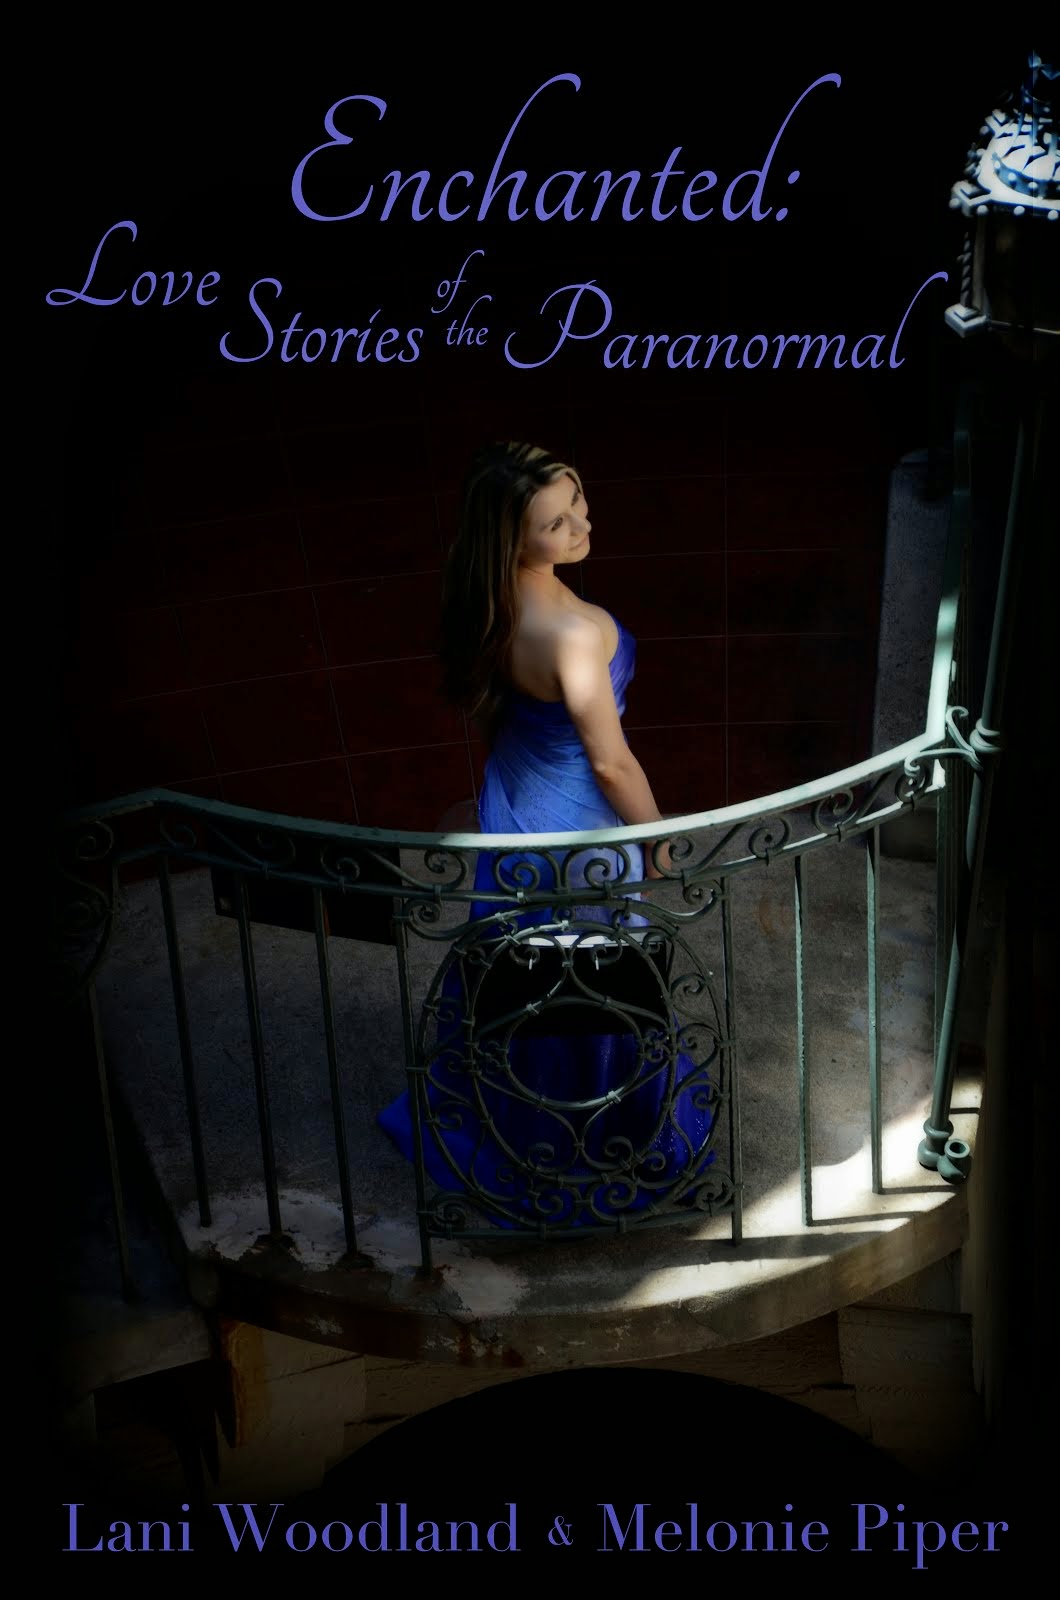 Enchanted: Love Stories of the Paranormal